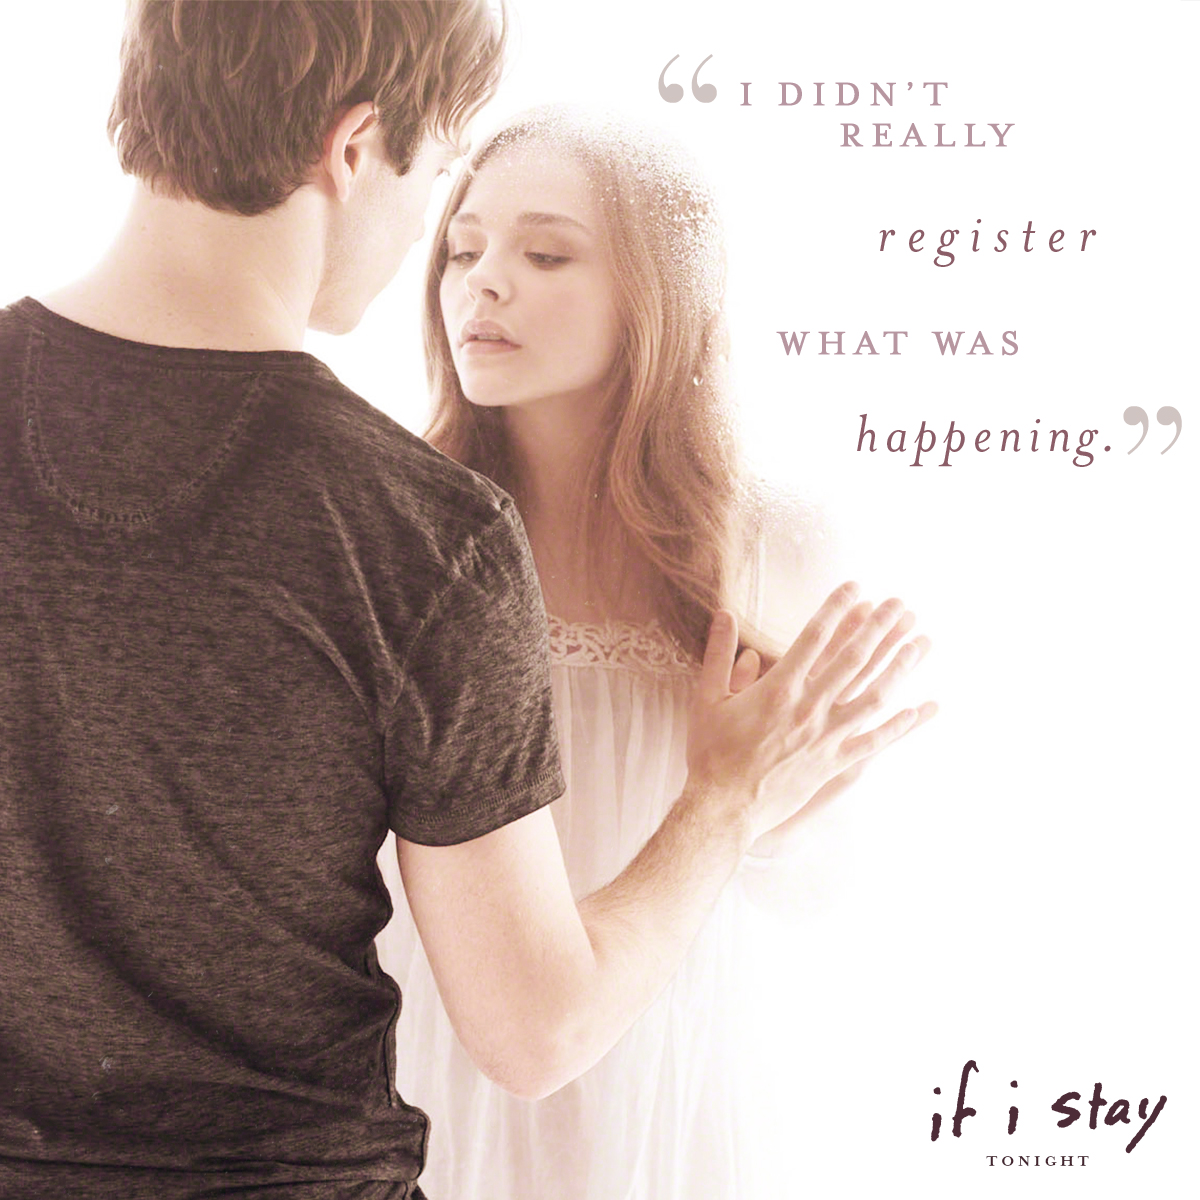 69 Images About If I Stay 3 On We Heart It See More About If